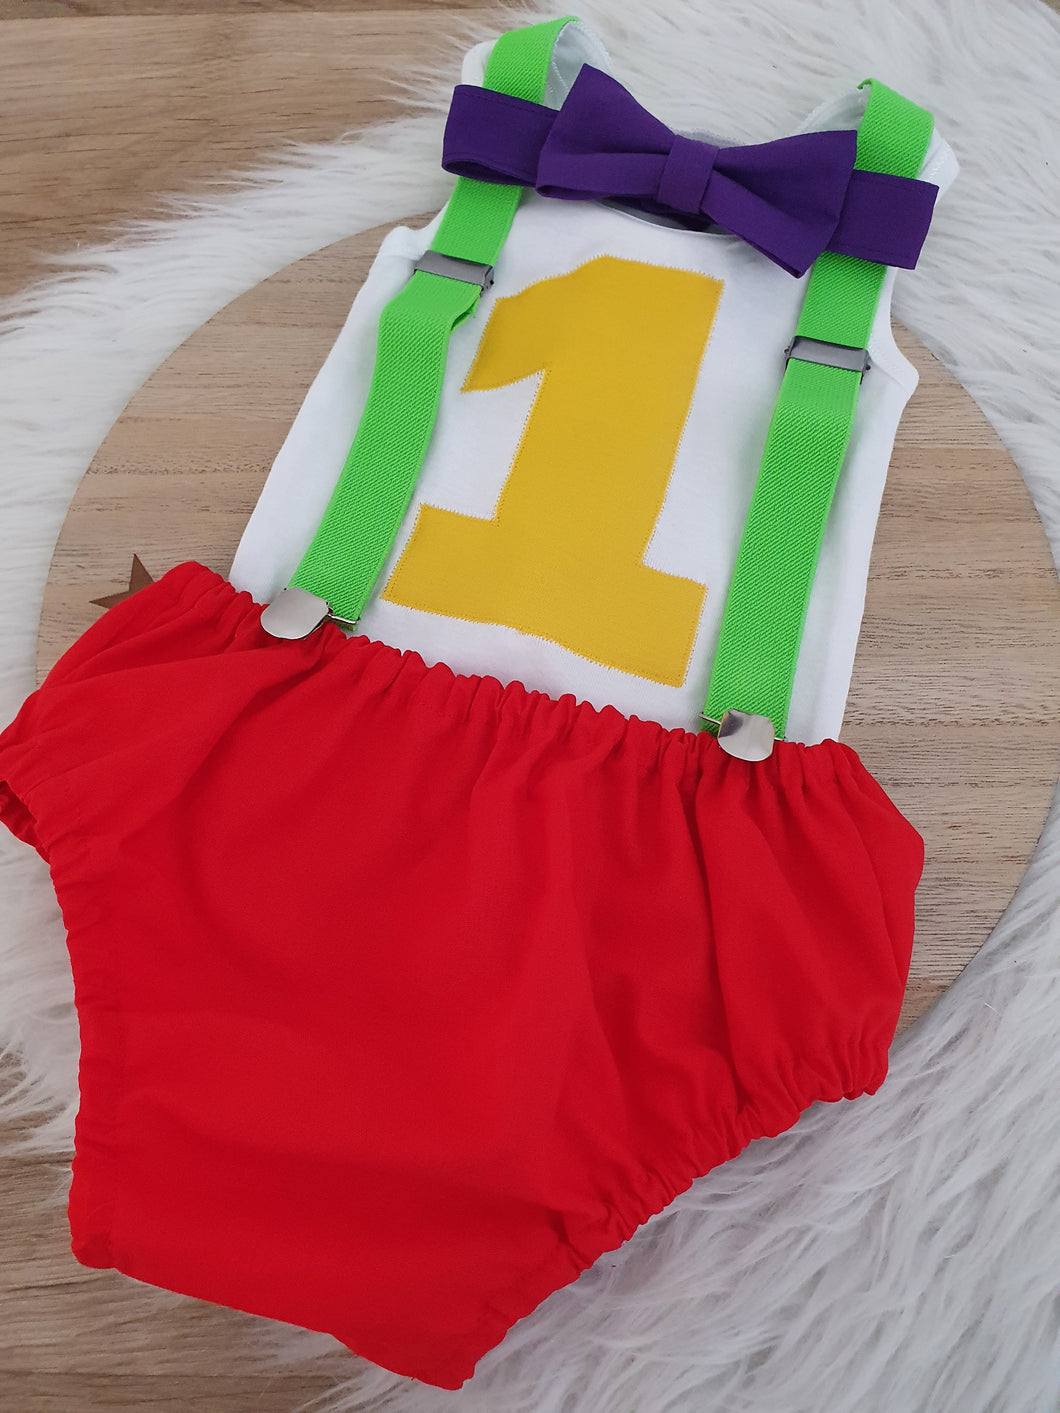 TUBBIES INSPIRED - Boys 1st Birthday - Cake Smash Outfit - Size 1, Nappy Cover, Tie, Suspenders & Singlet Set